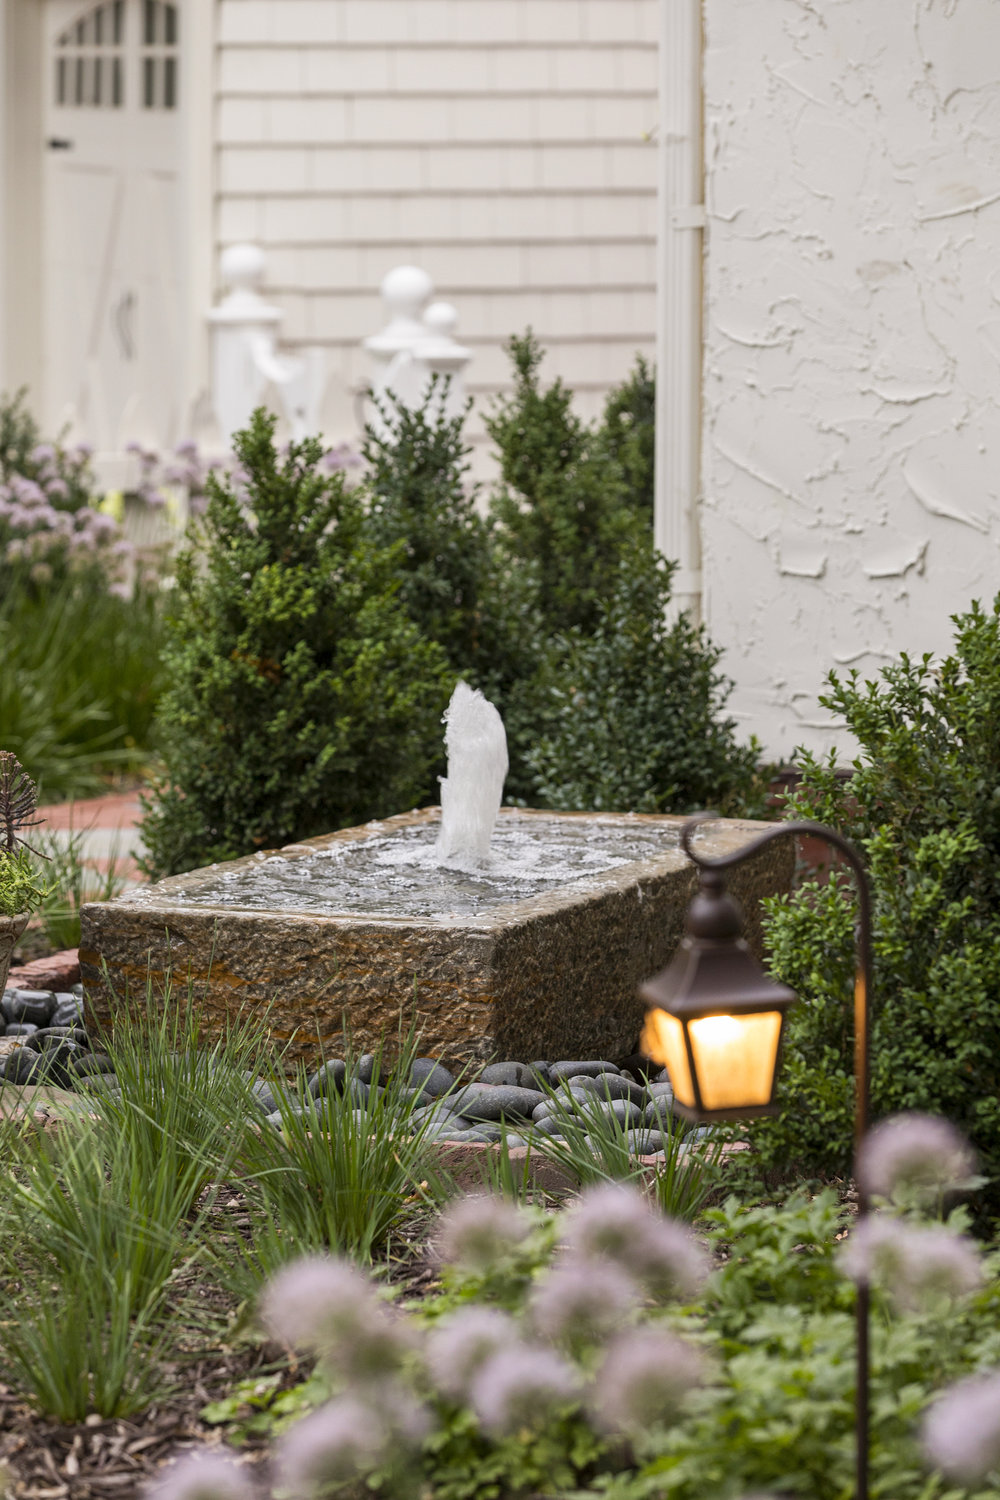 Mom's Design Build - Outdoor Bubbling Water Feature